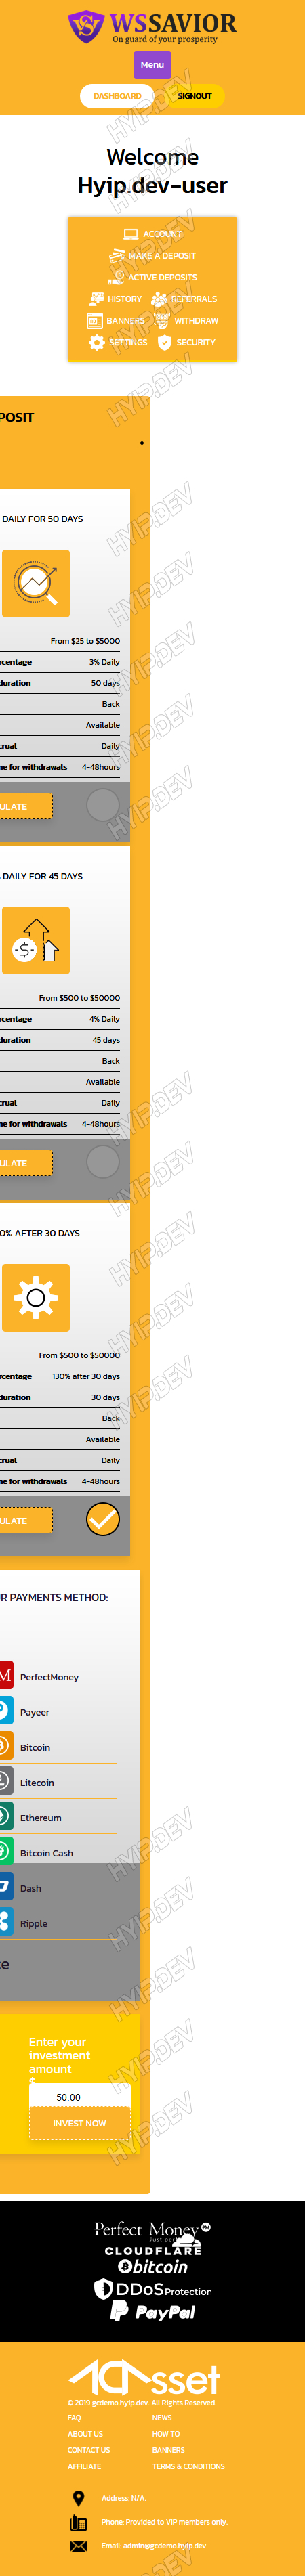 goldcoders hyip template no. 174, mobile page screenshot